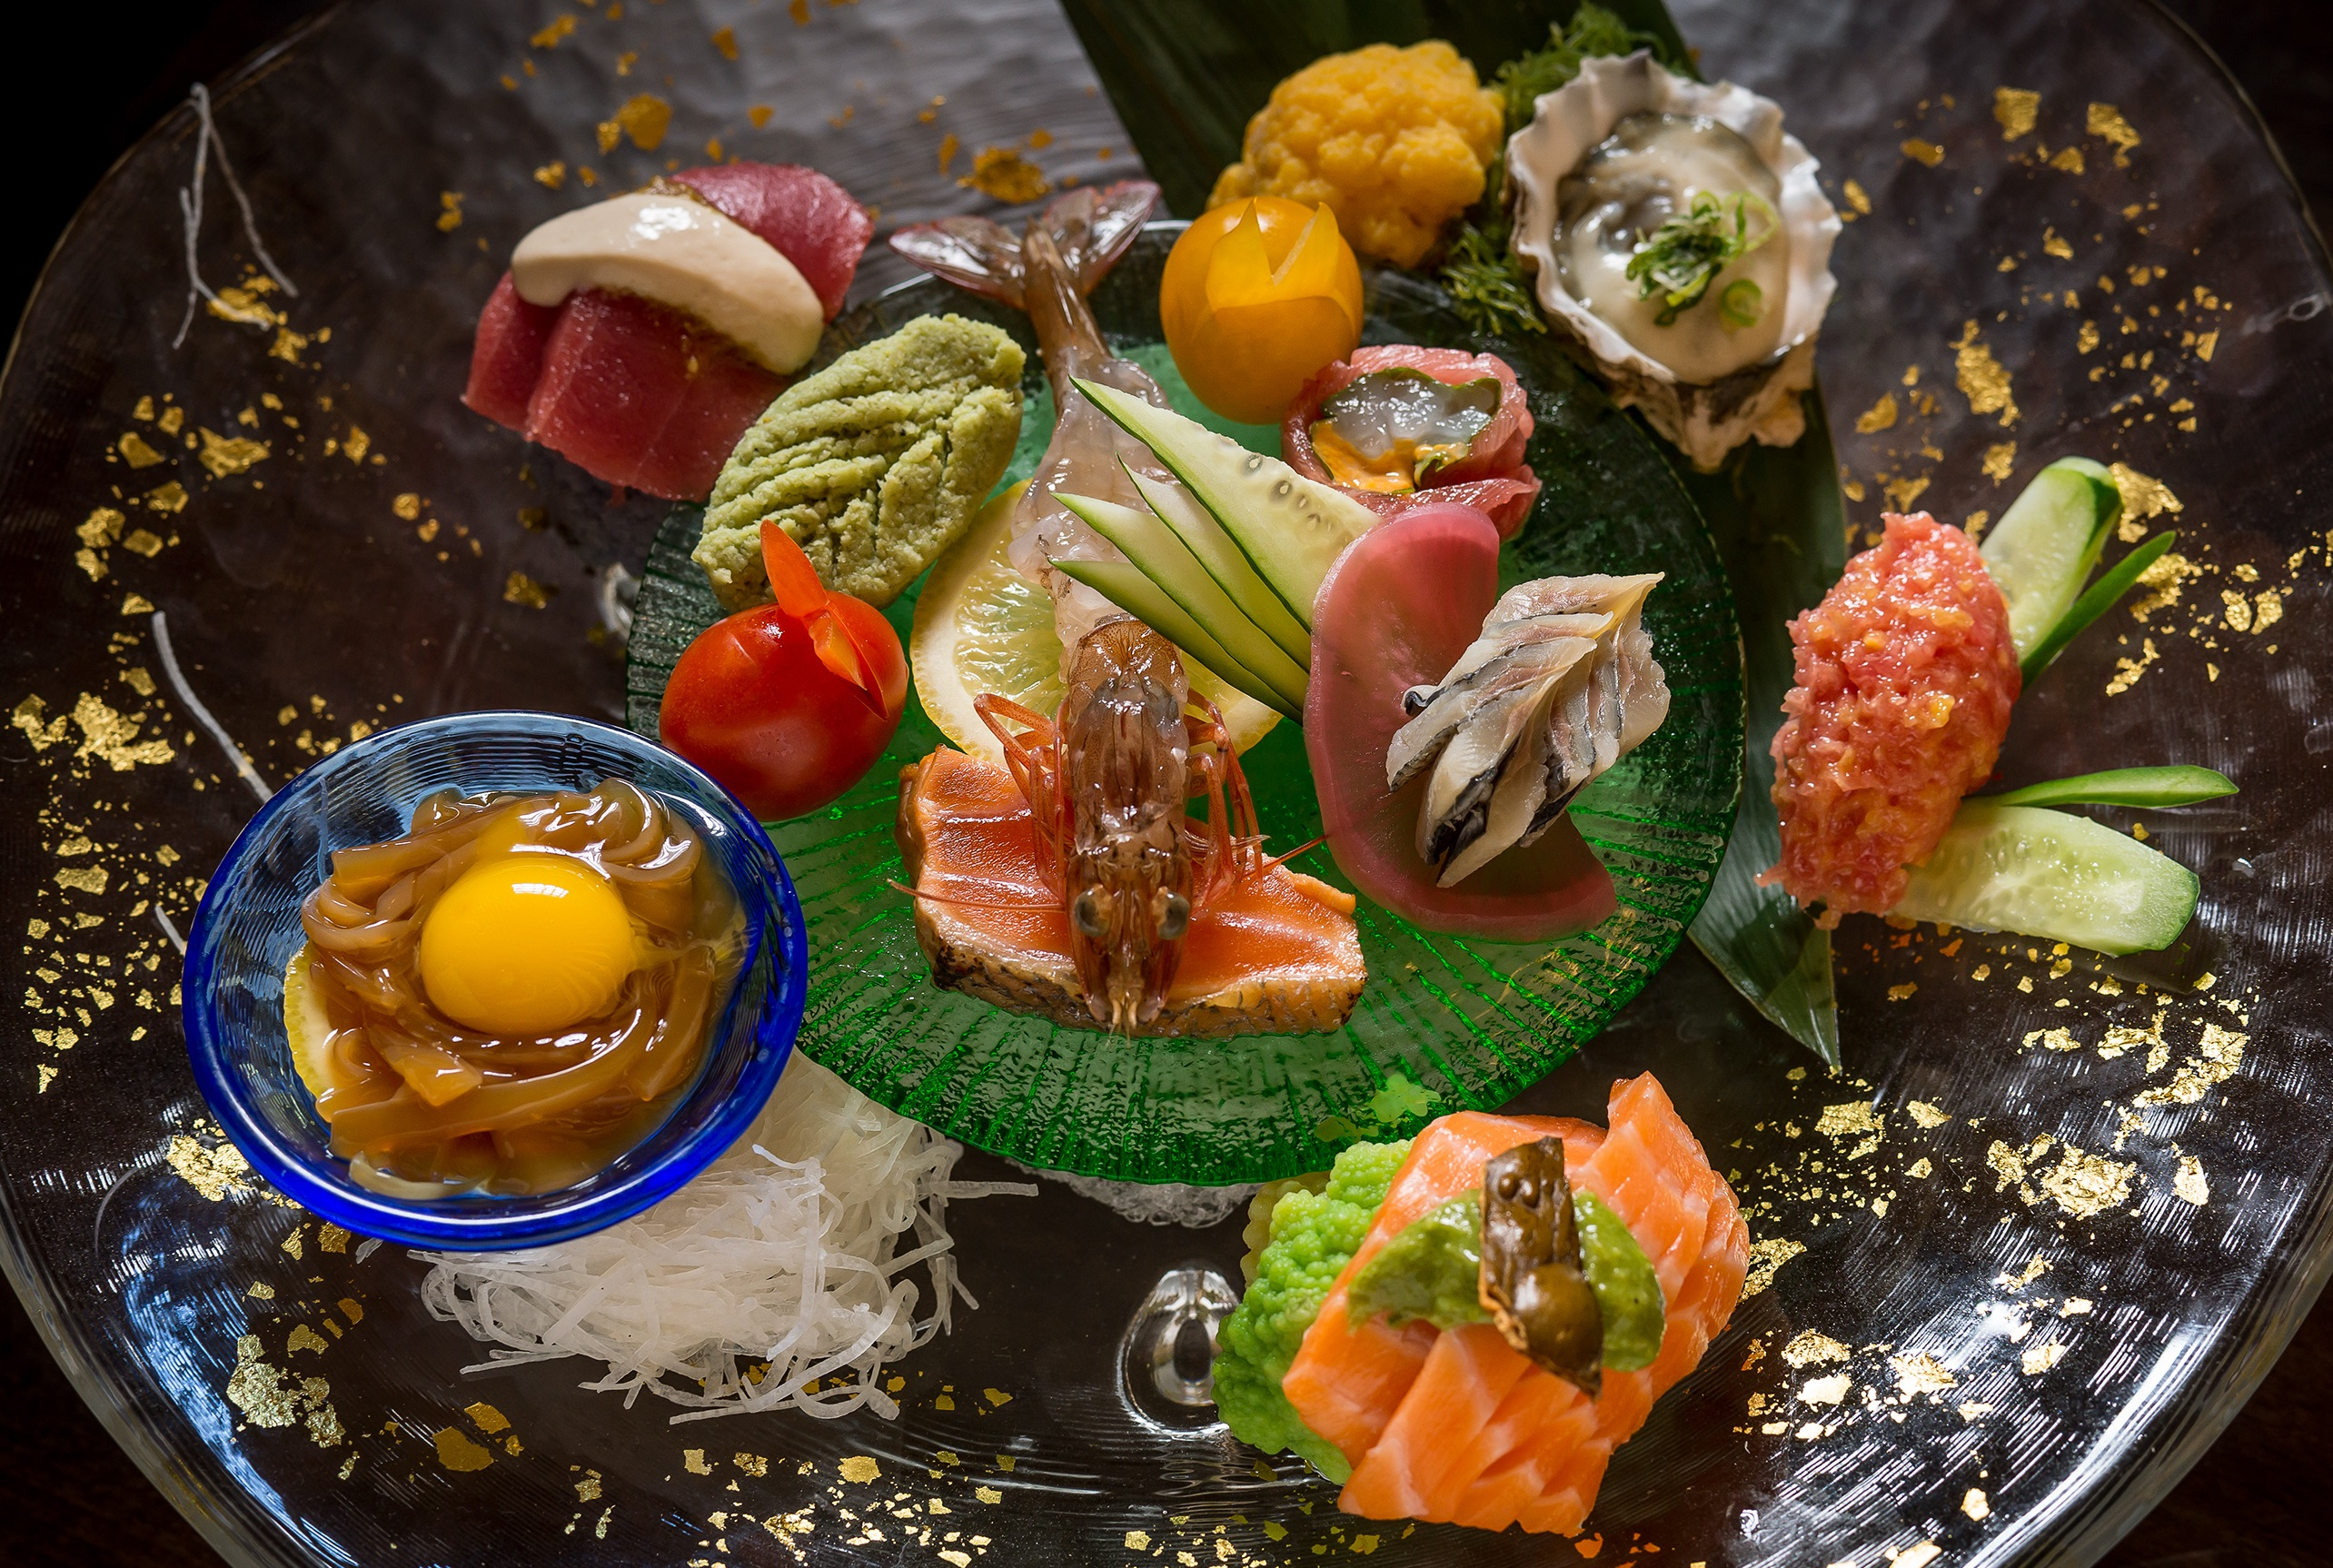 interview a sushi god chef seki on etiquette soy sauce a platter of fish at sushi seki combines ese classics flavors more familiar to the american palate